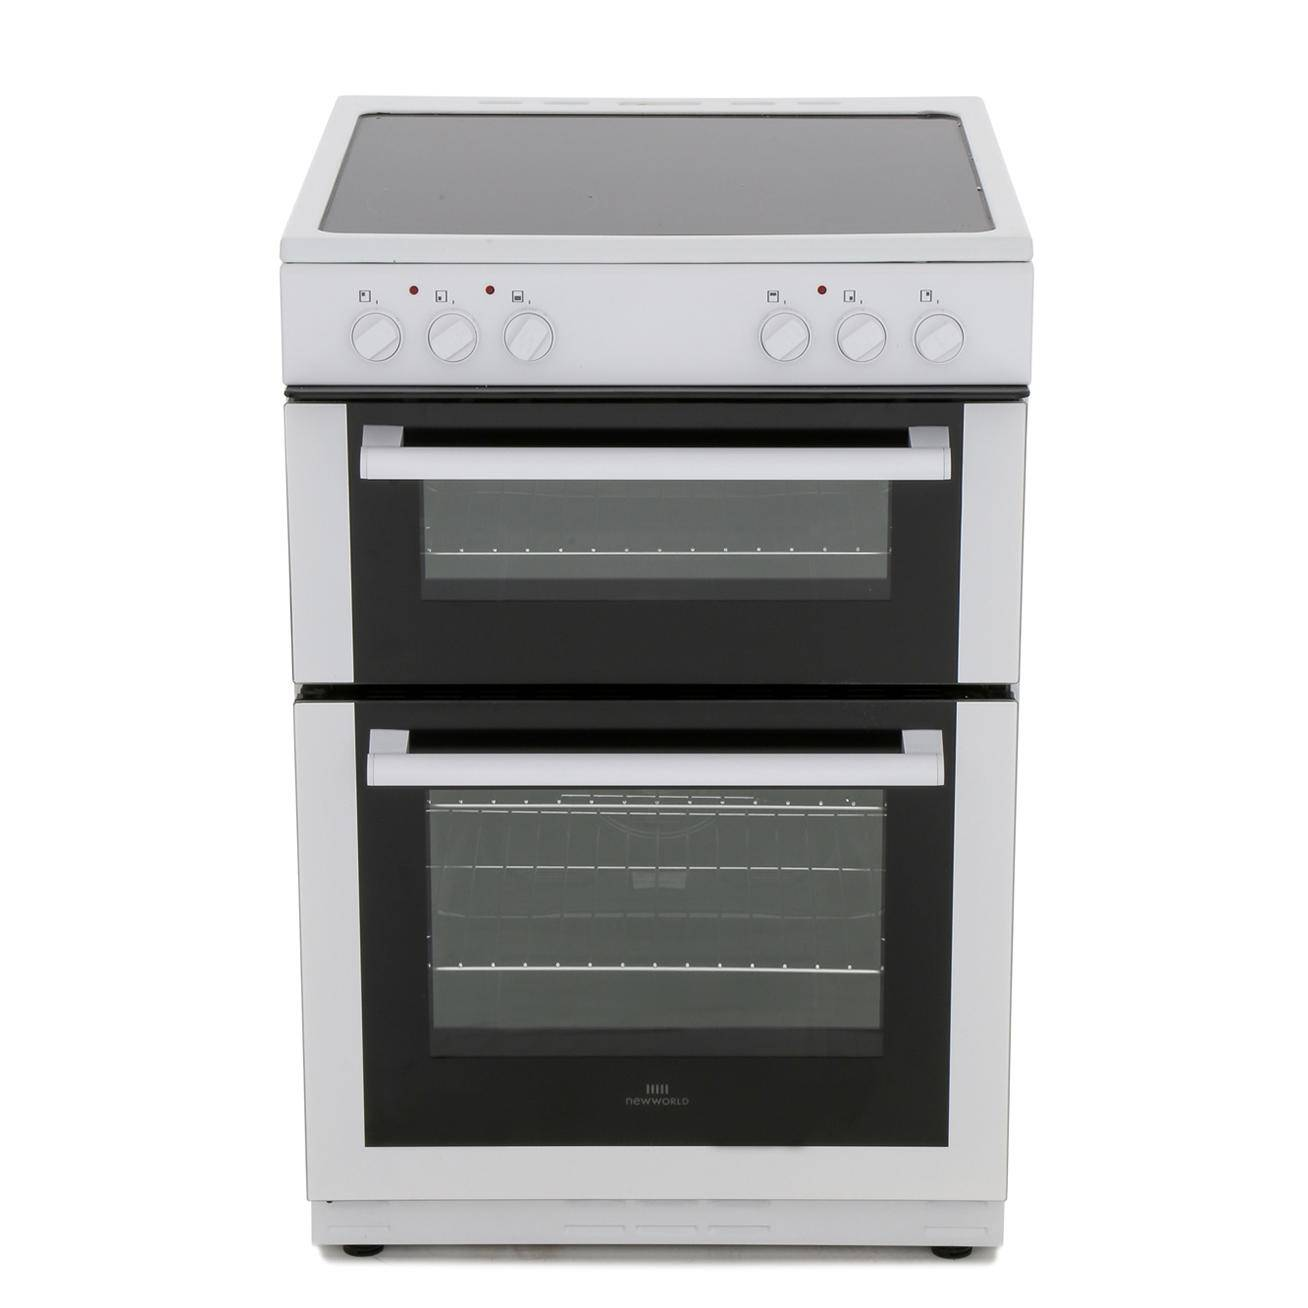 New World White Ceramic Electric Cooker with Double Oven